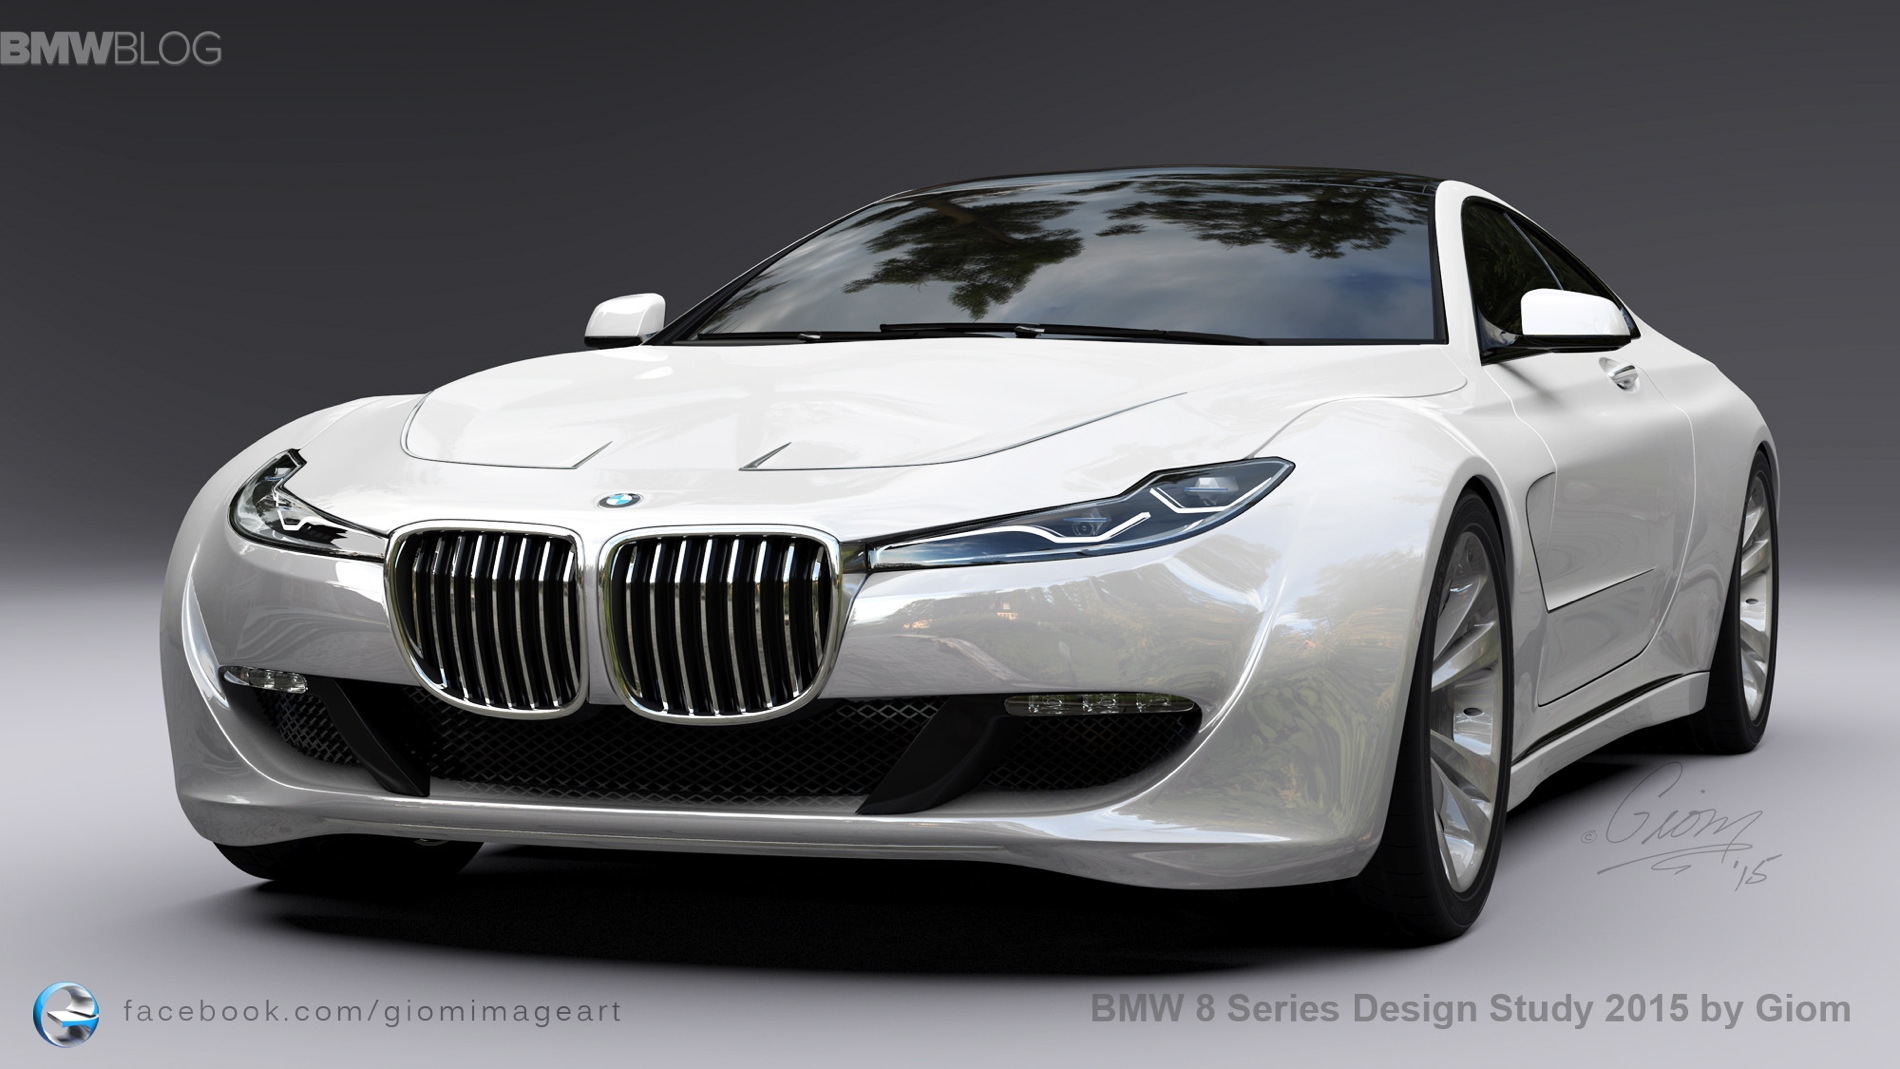 BMW 8 Series Design Study images 7